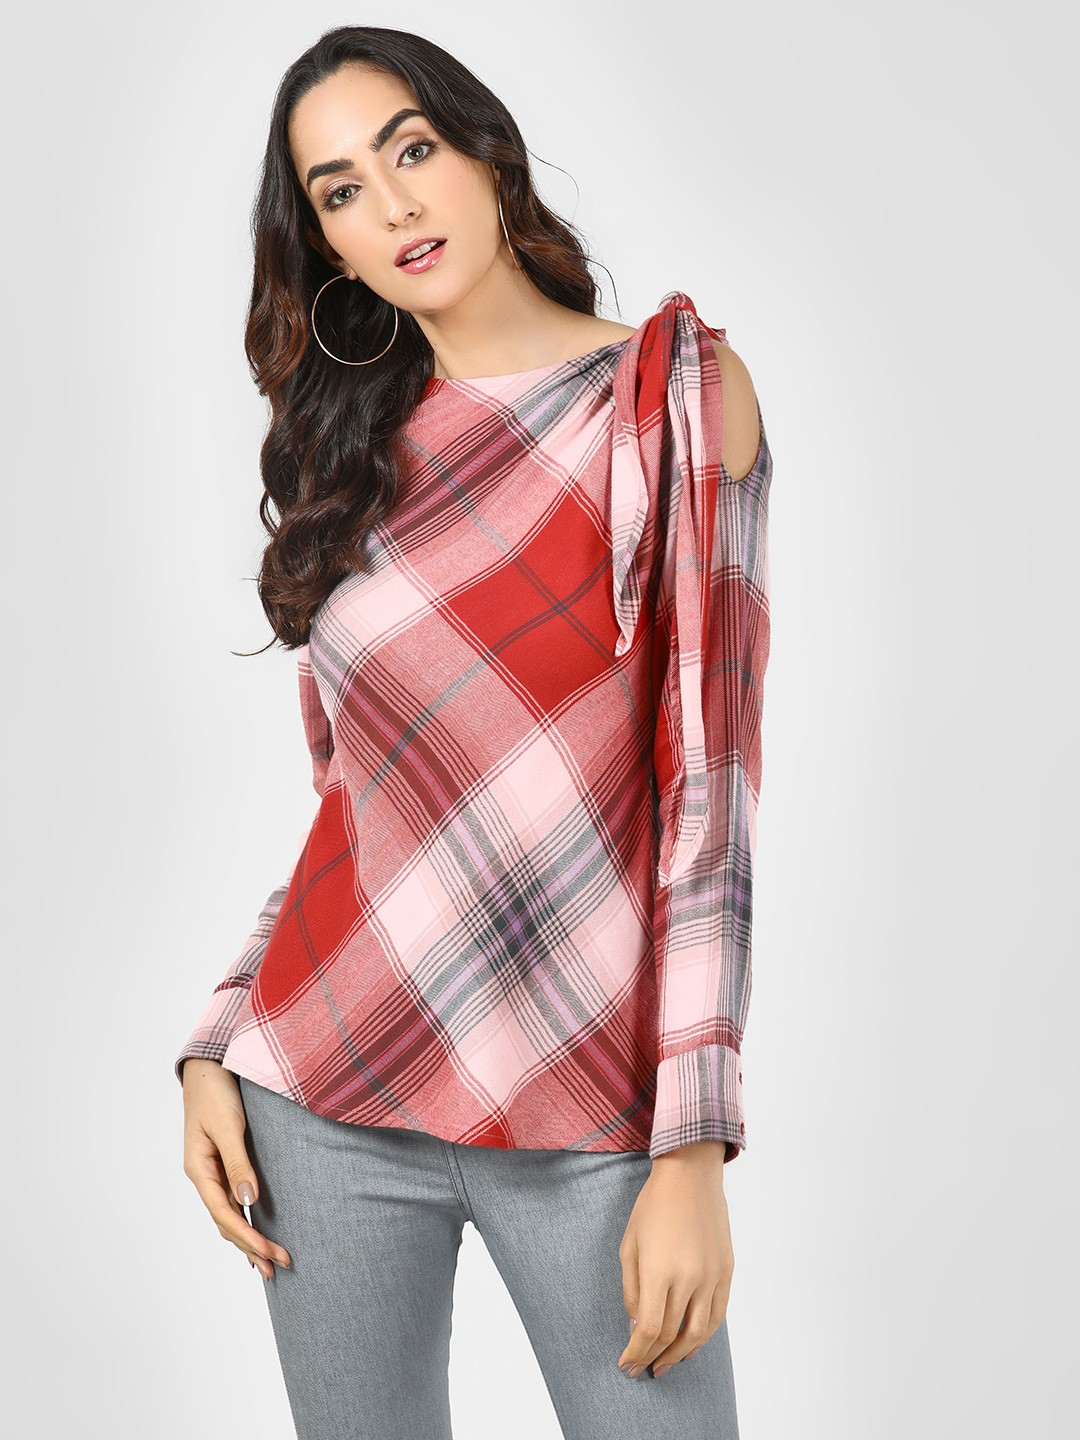 Sbuys Multi Shoulder Knot Multi-Check Top 1